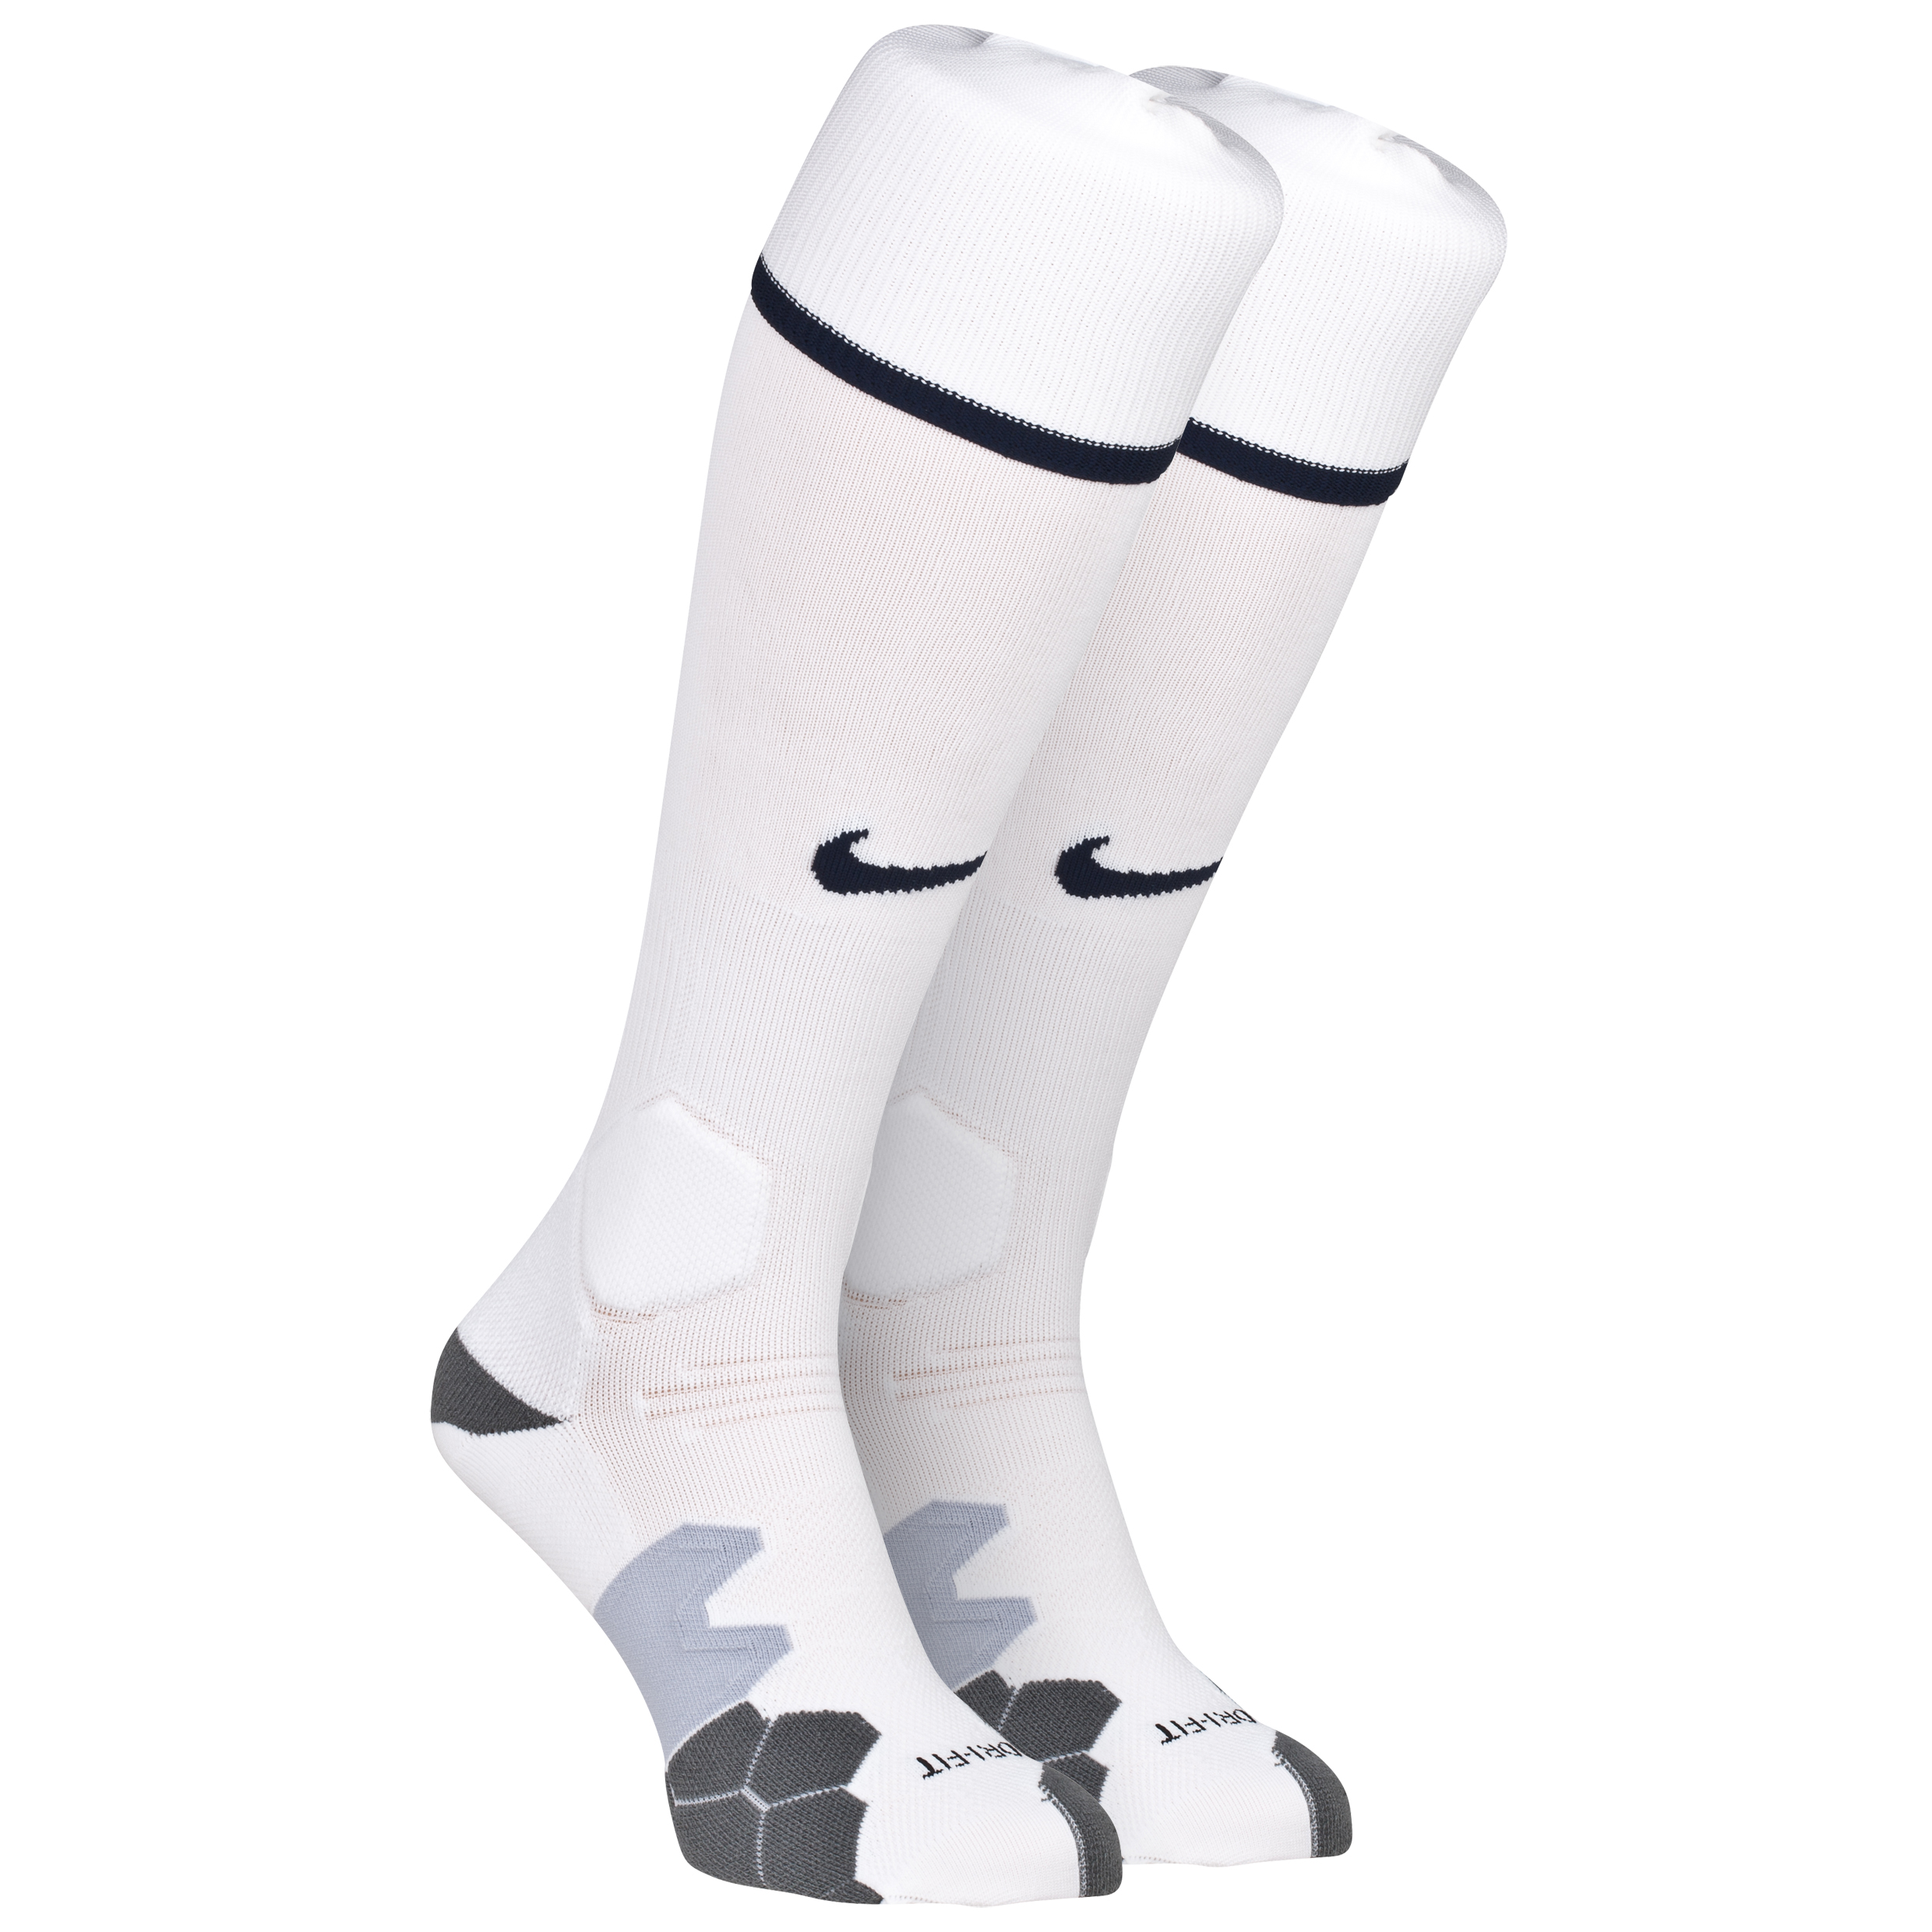 England Home Sock 2013/14 White